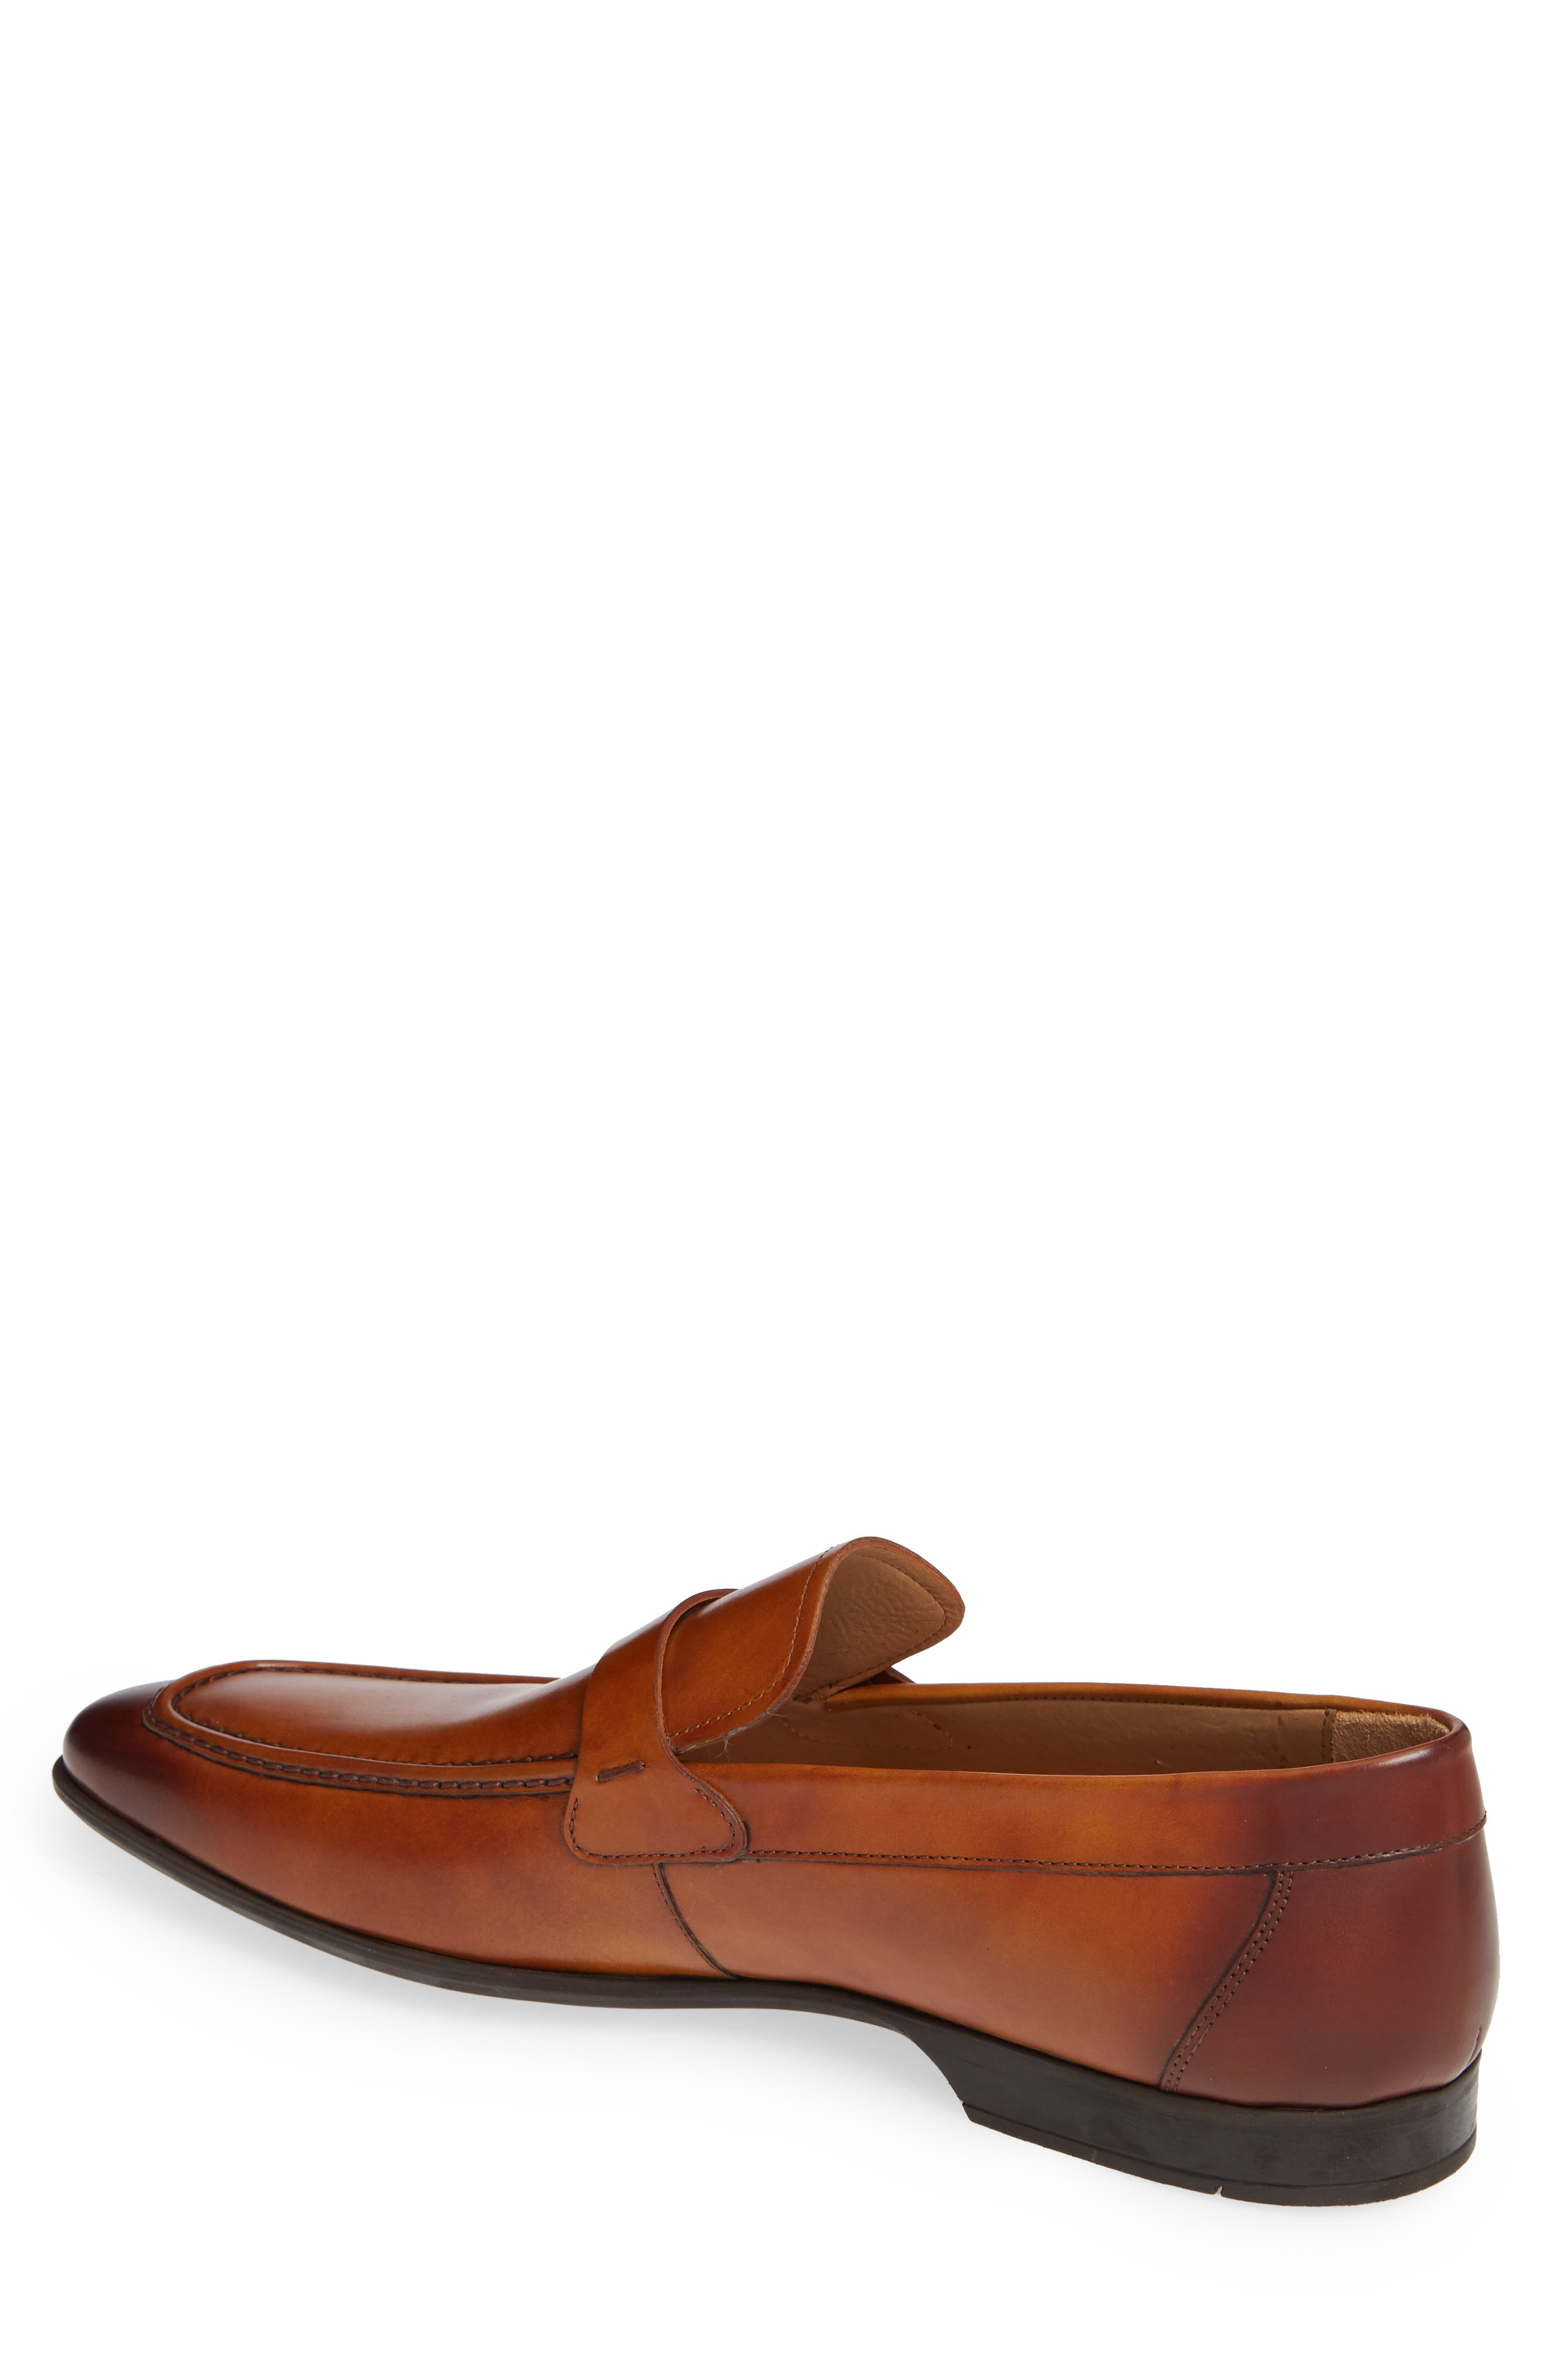 'Lino' Loafer,                             Alternate thumbnail 2, color,                             BROWN LEATHER